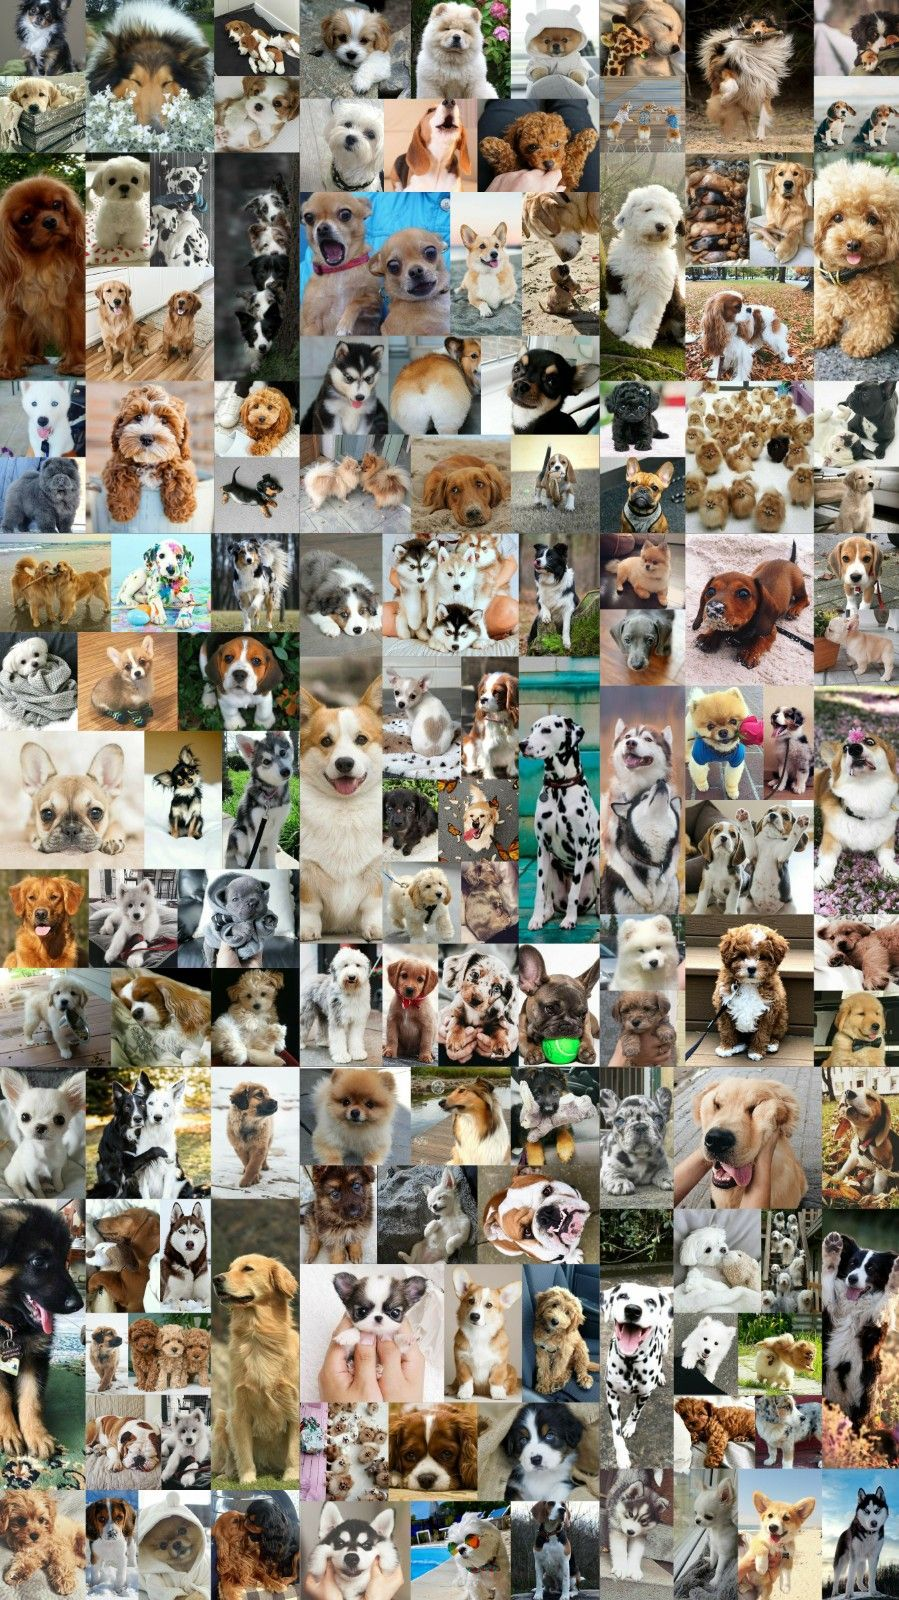 Wallpaper Background Collage Aesthetic Dogs Pets Puppy Dog